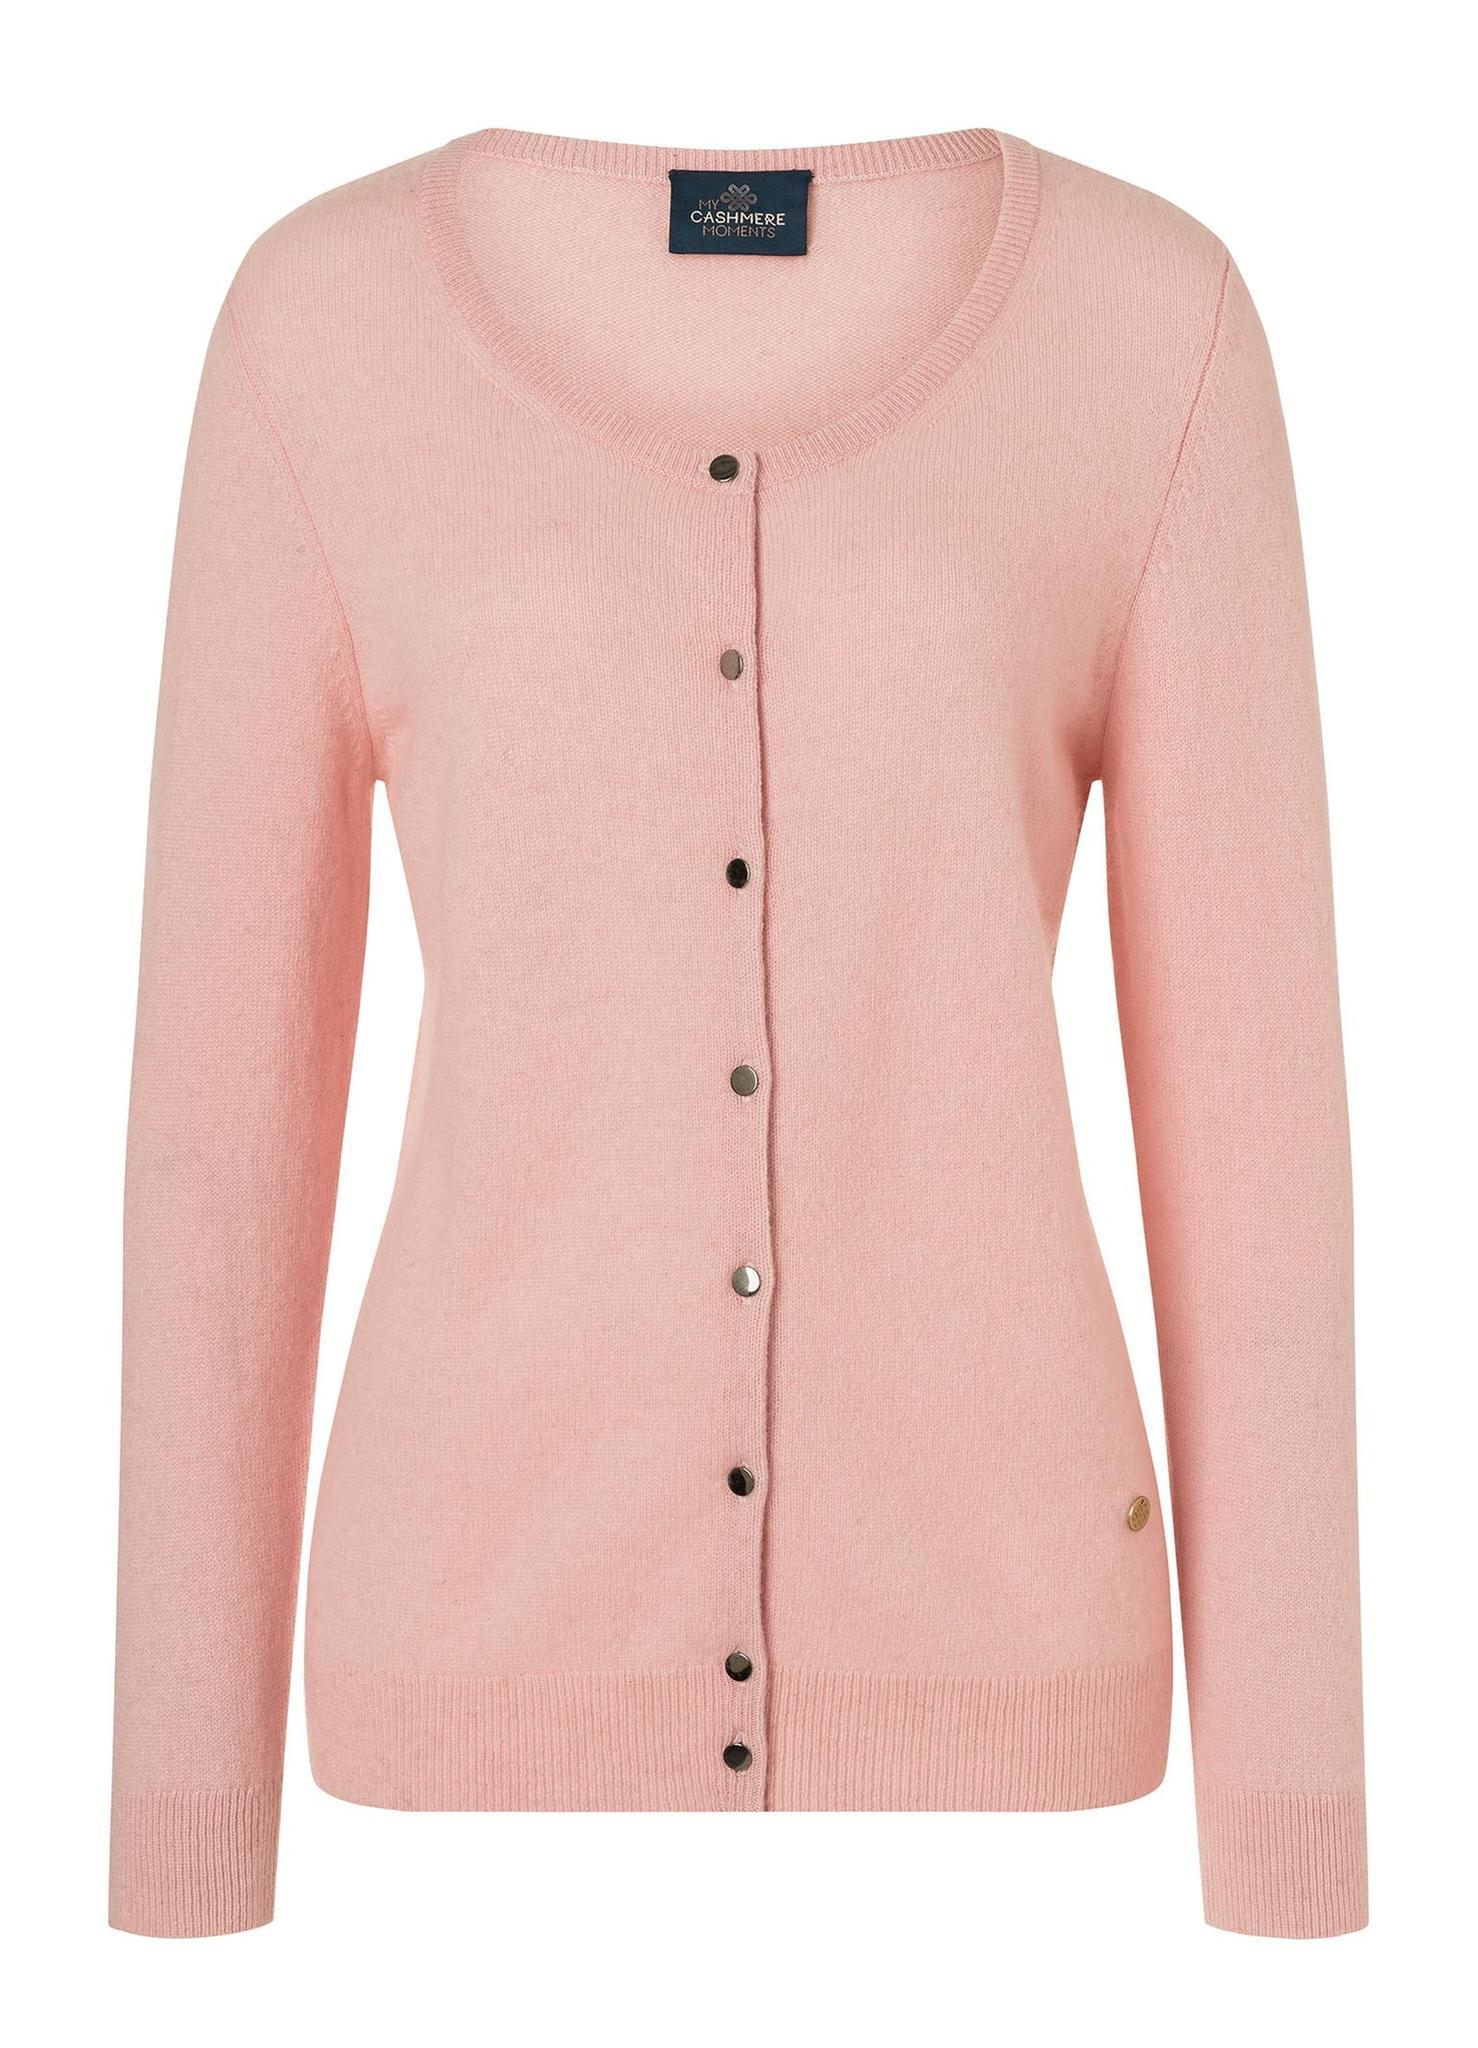 "Cardigan der ""My Cashmere Moments by Gala"" Kollektion in der Trendfarbe Sweet Lilac."